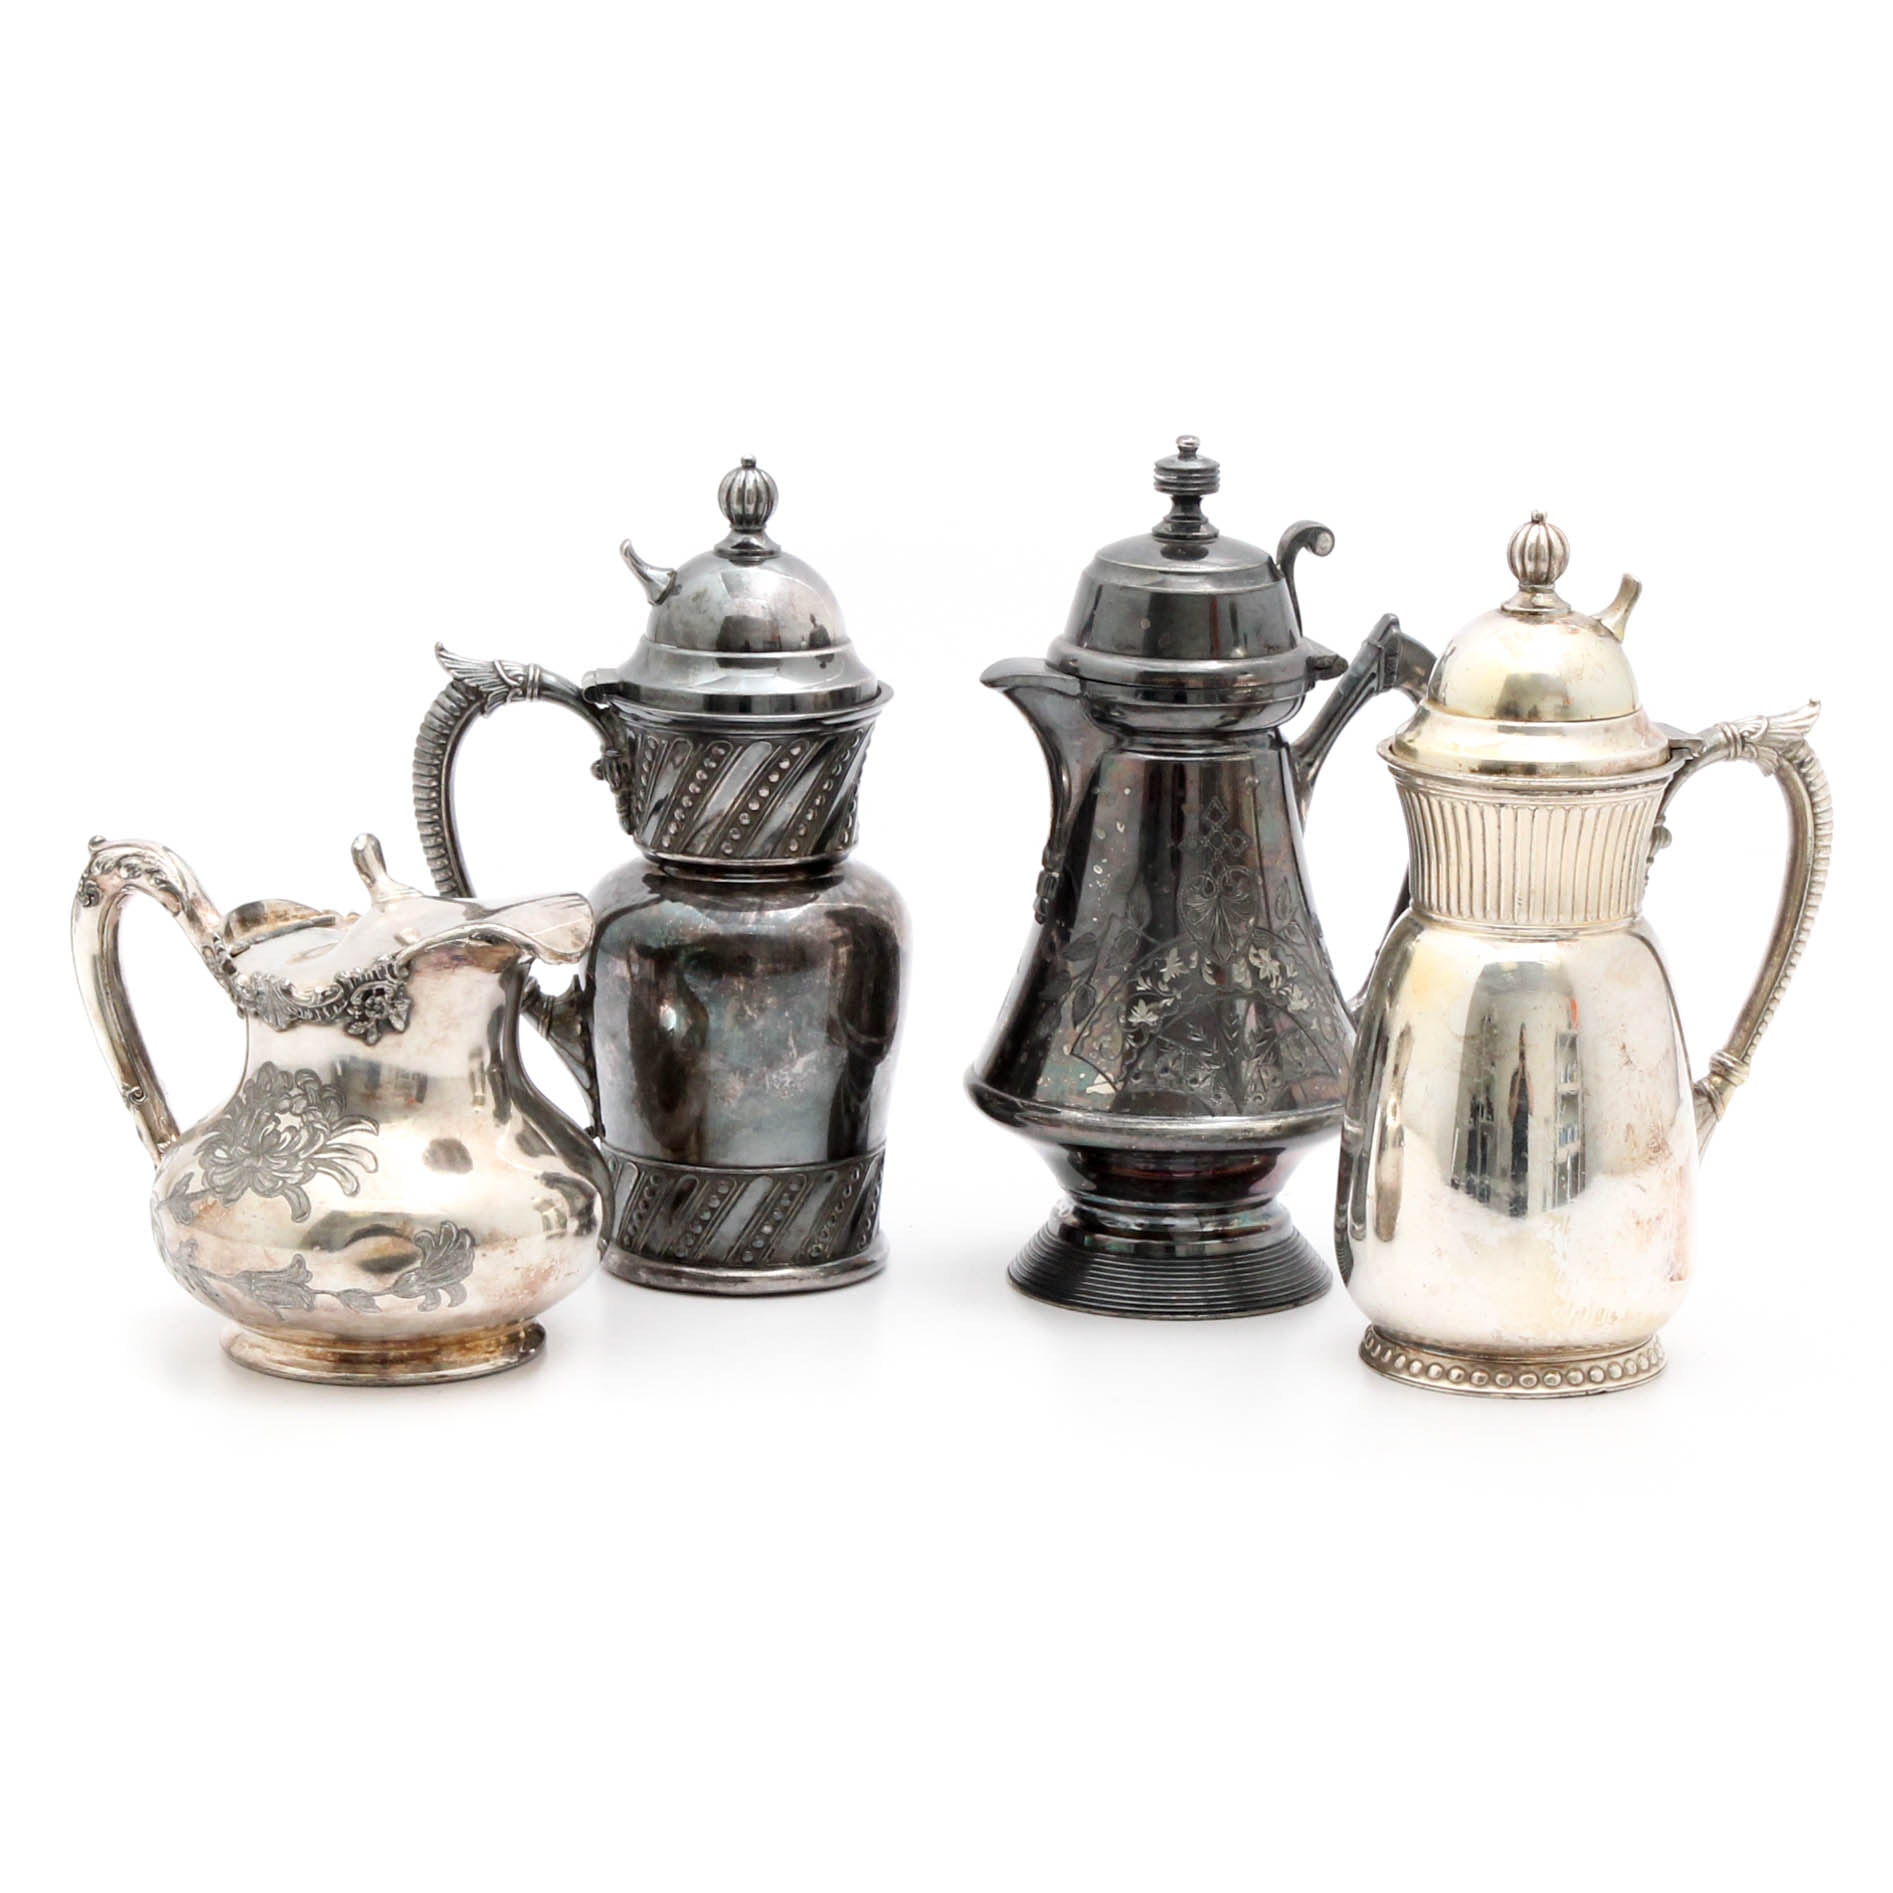 Four Victorian Era Silverplate Syrups